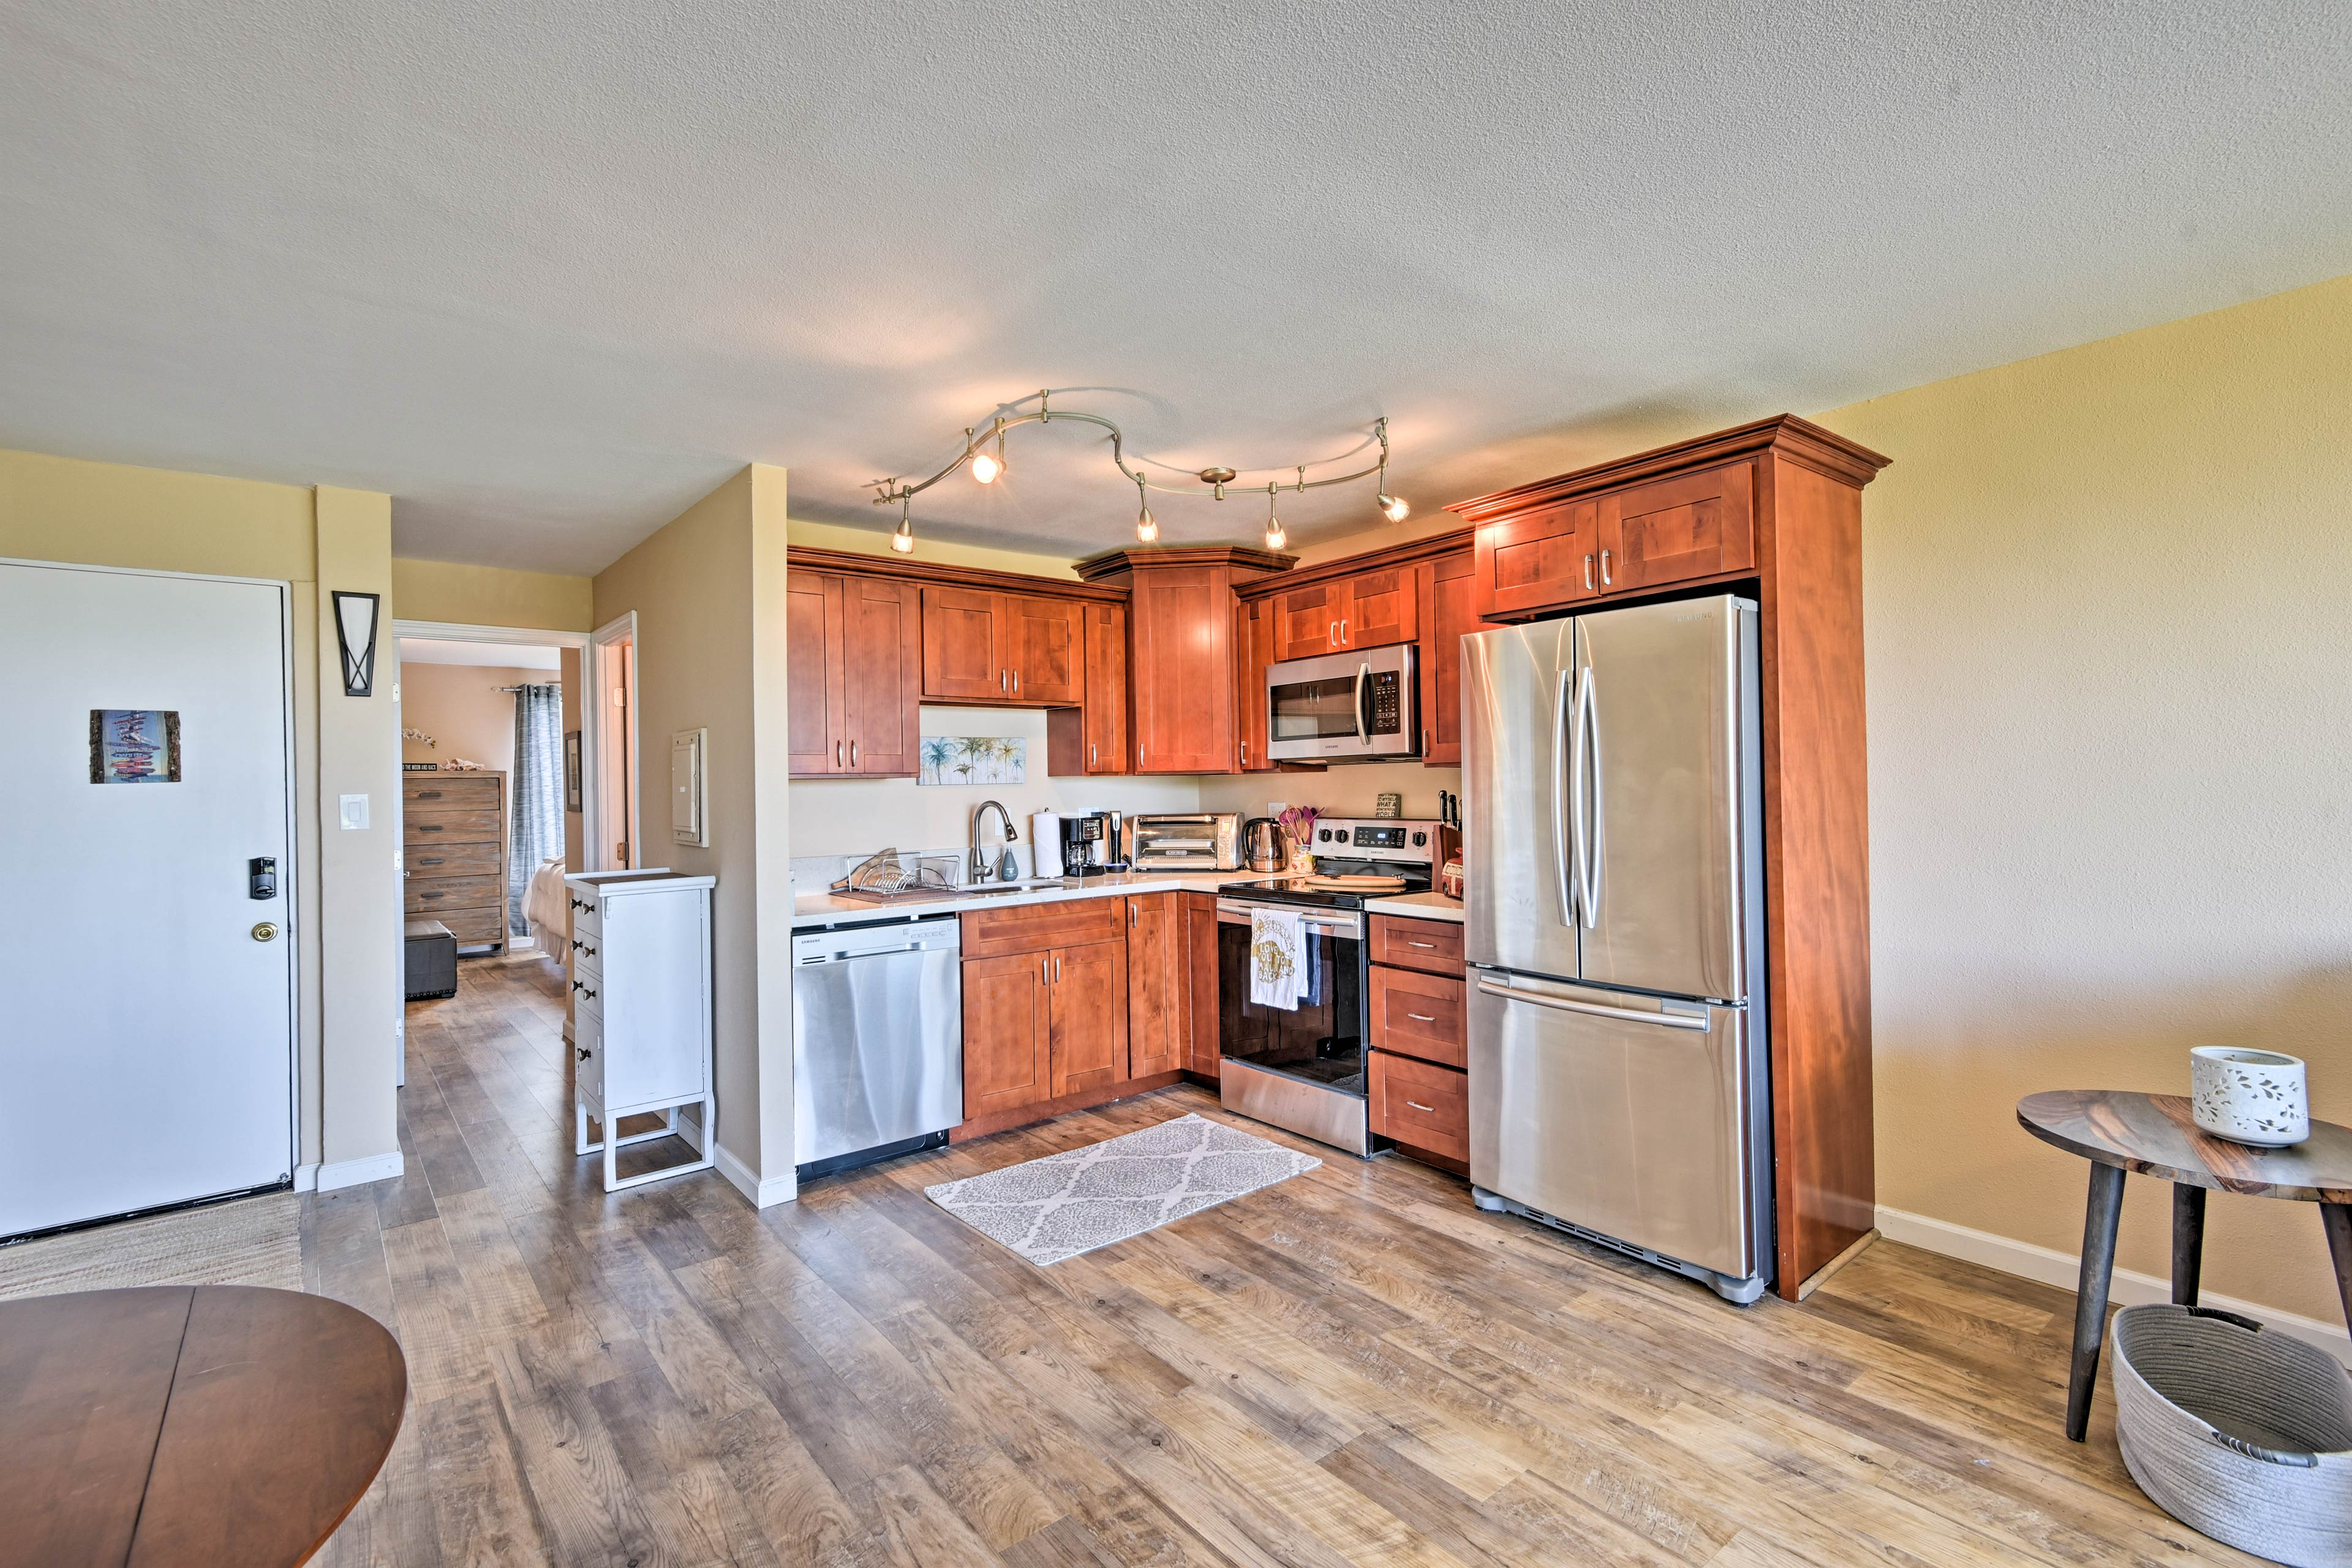 Hardwood floors fill the entire home.